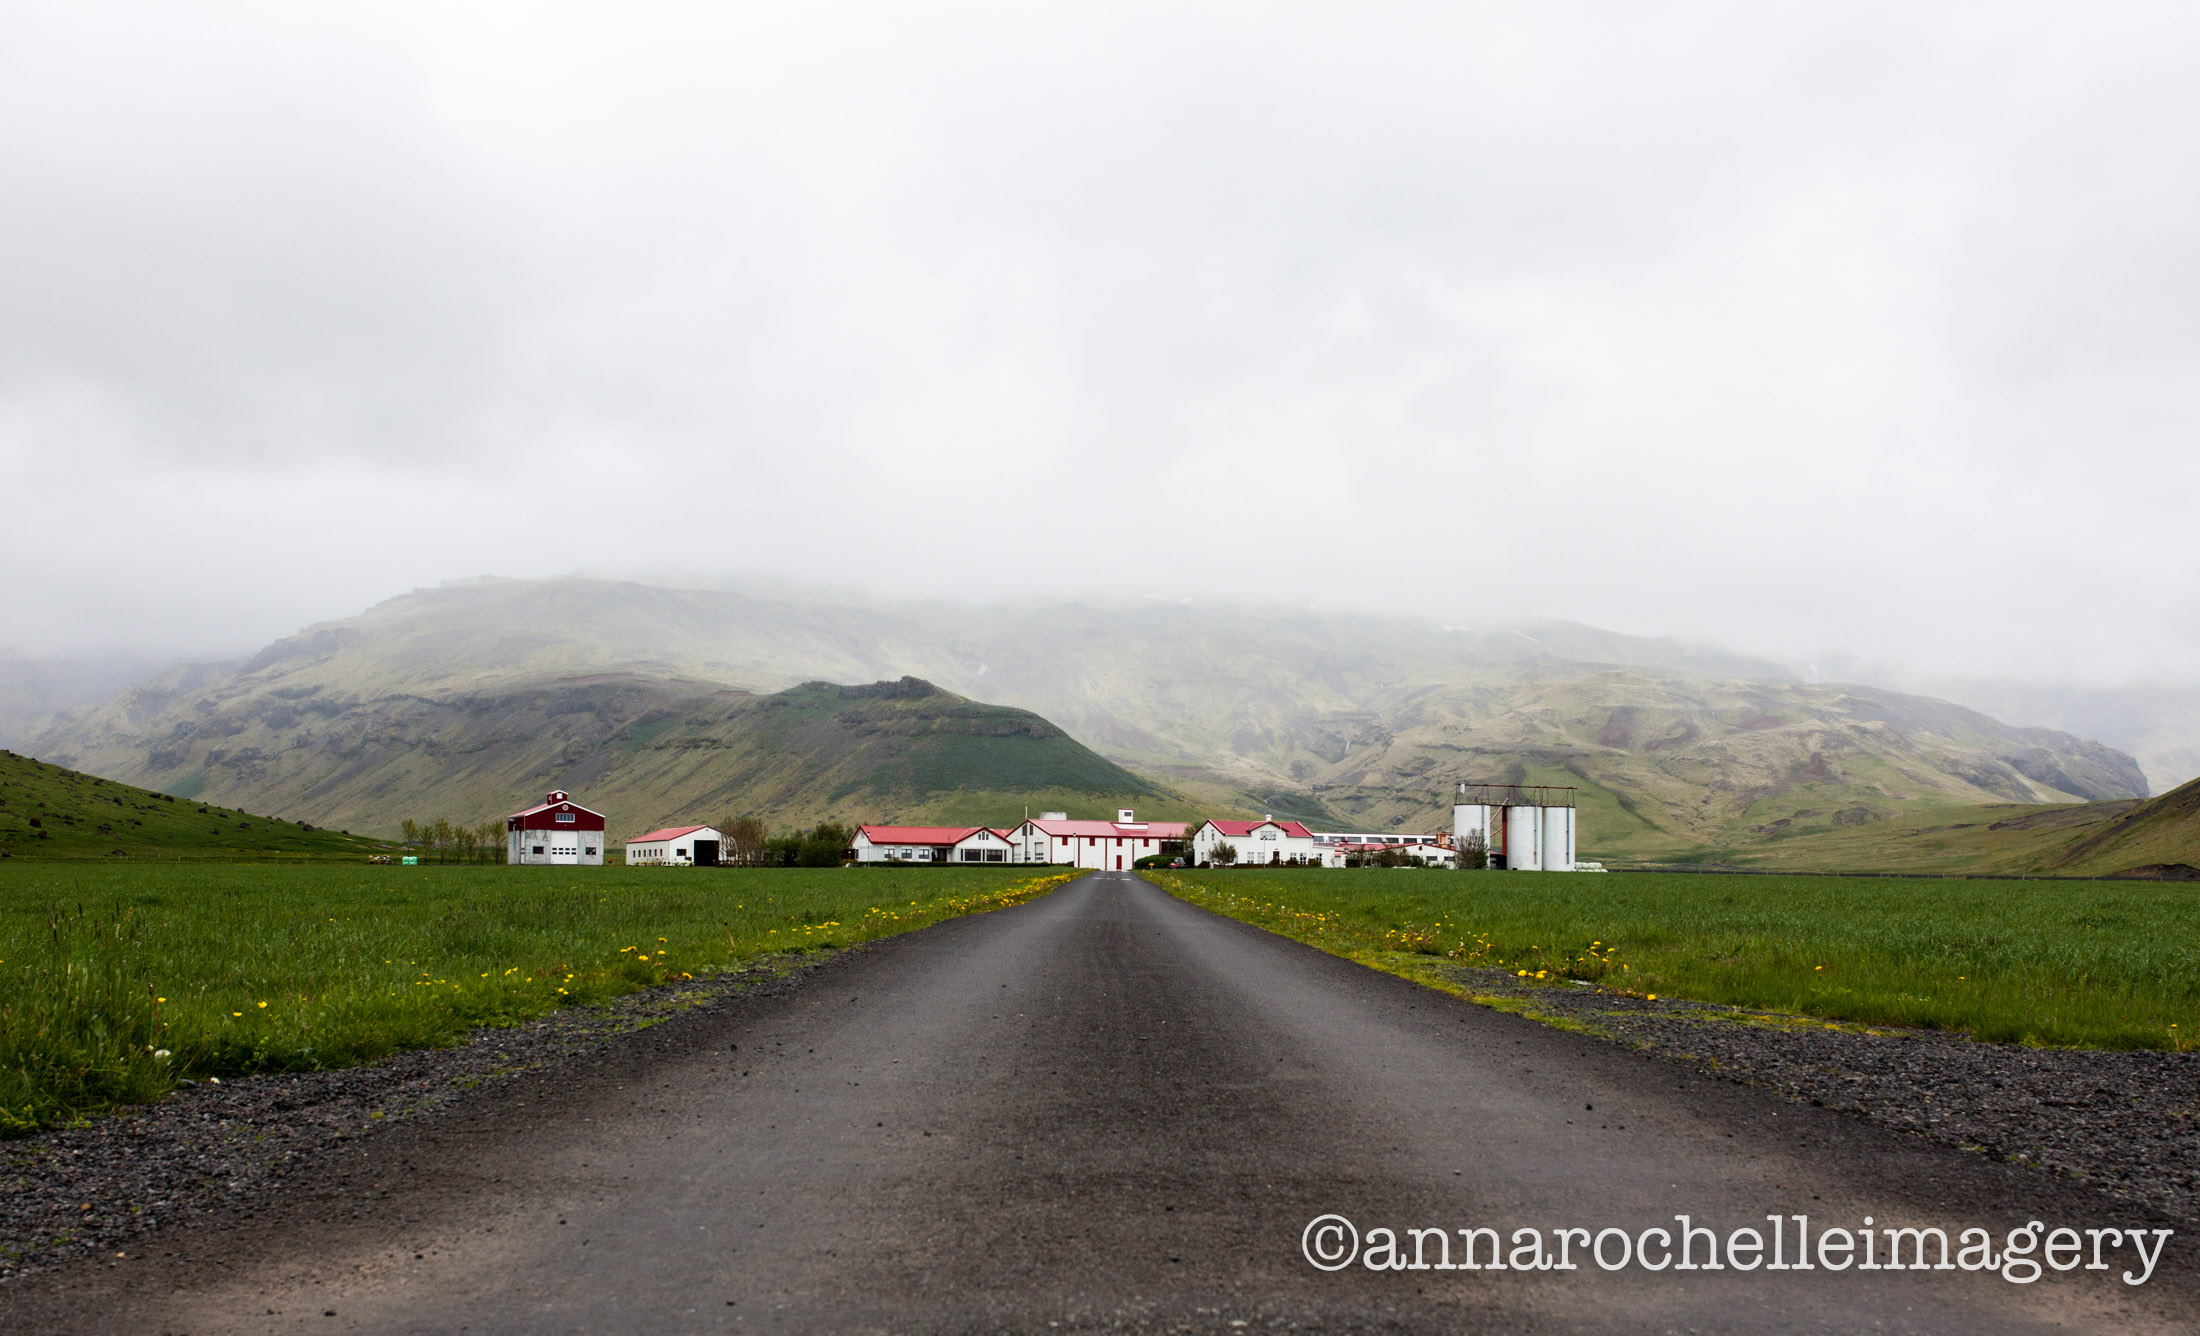 farmhouse-iceland-roadside-roadtrip-anna-rochelle-imagery-travel-creative.jpg